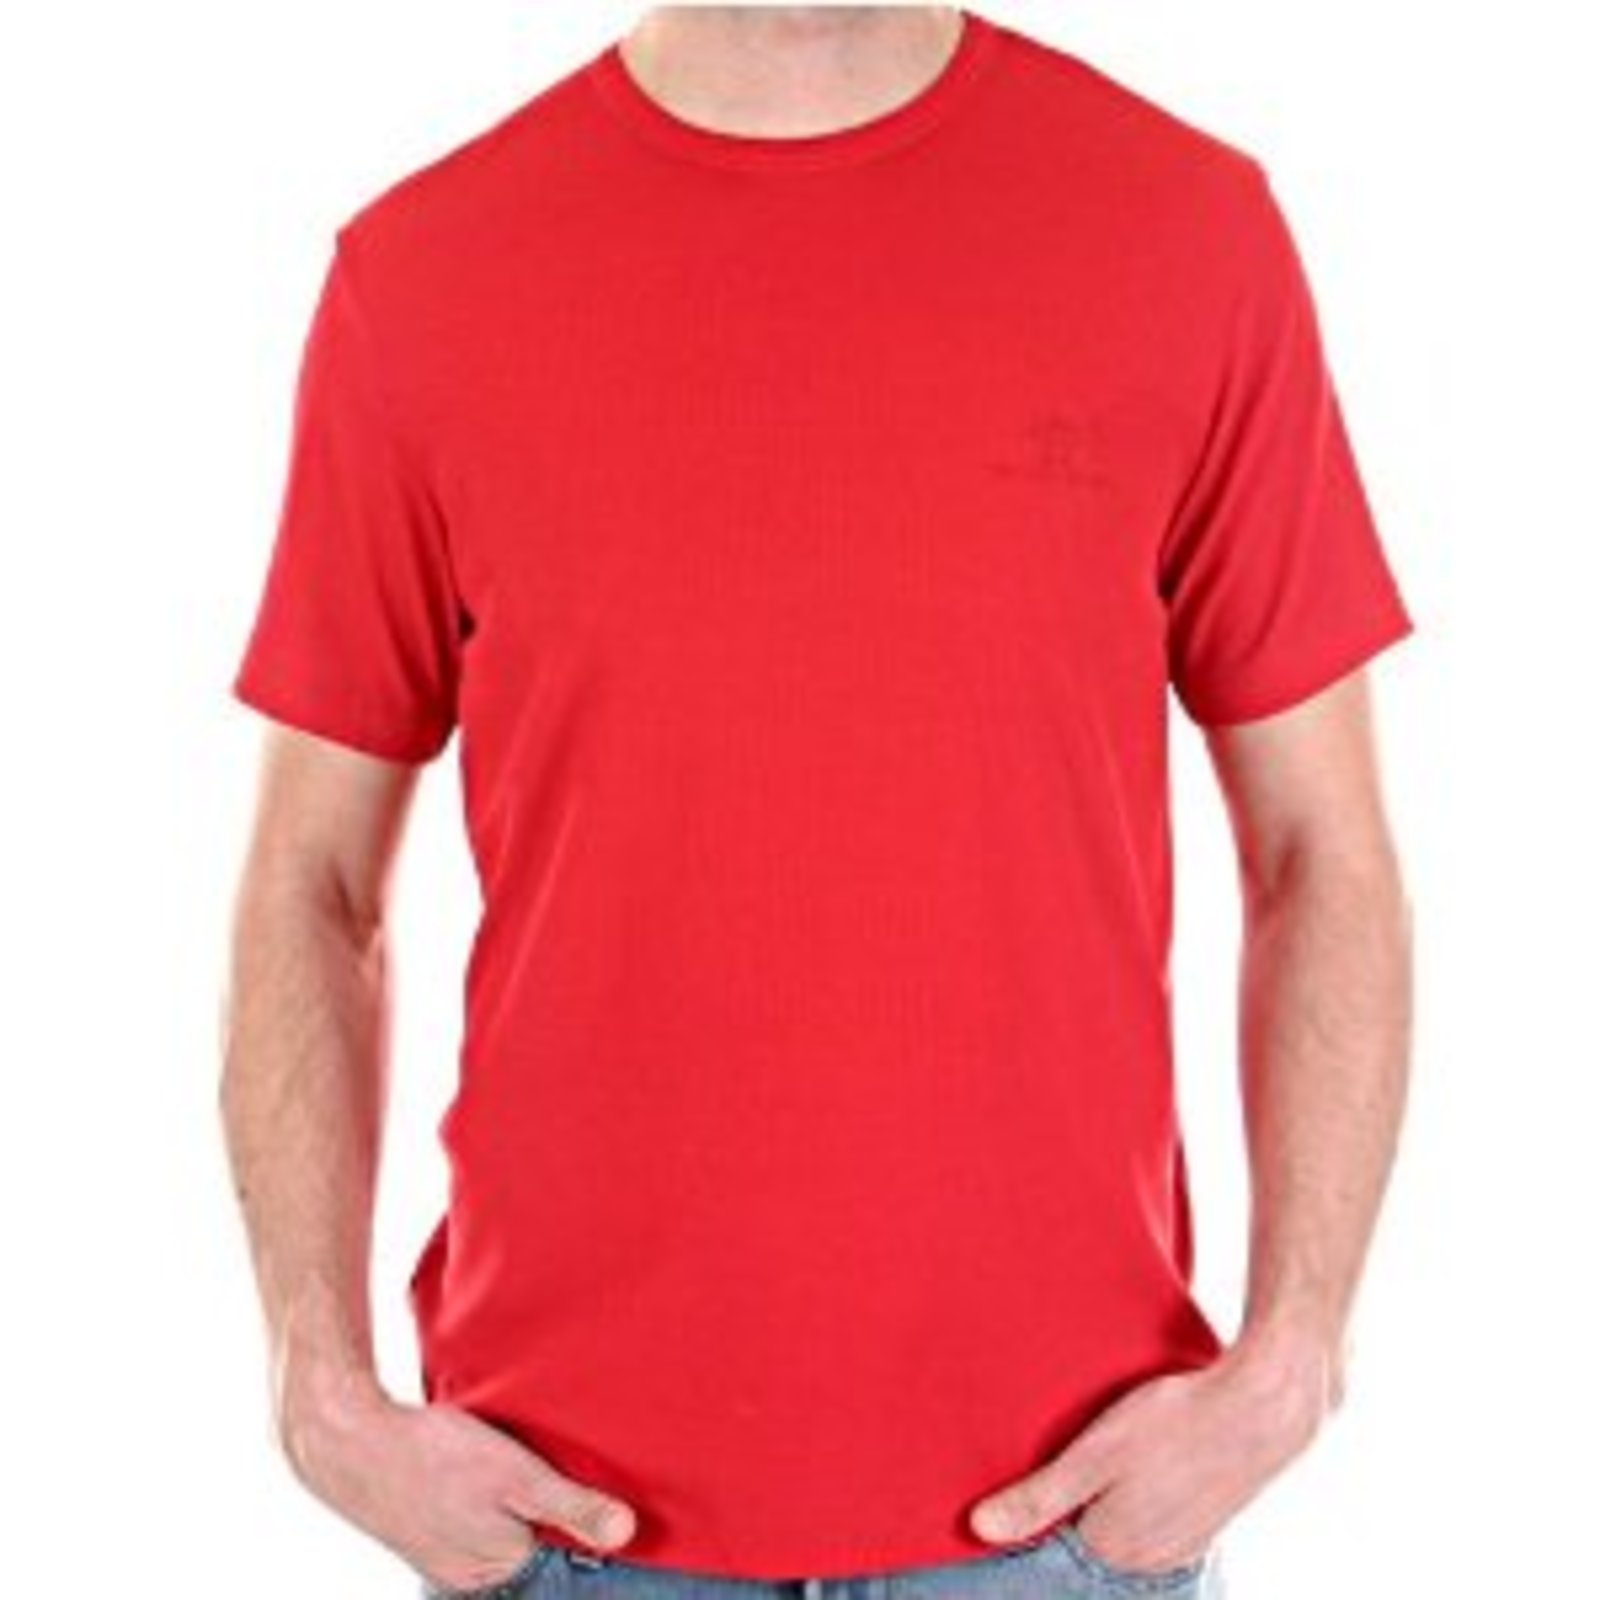 Versace t-shirt mens red crew neck VJCM3668 at Togged Clothing